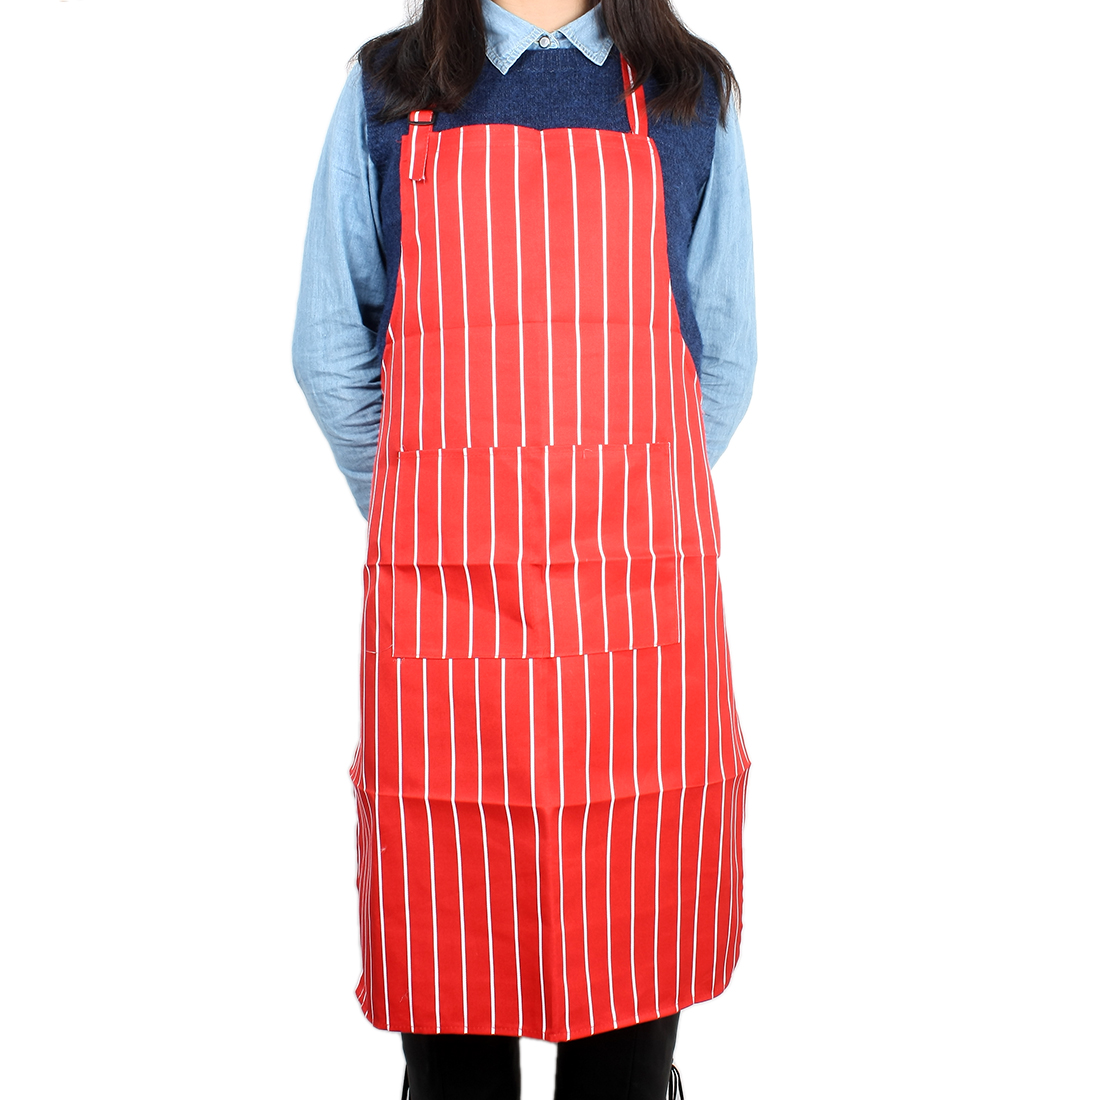 Woman Hot Pot Kitchen Cooking Fabric Stipe Printed Pocket Apron Bib Red White